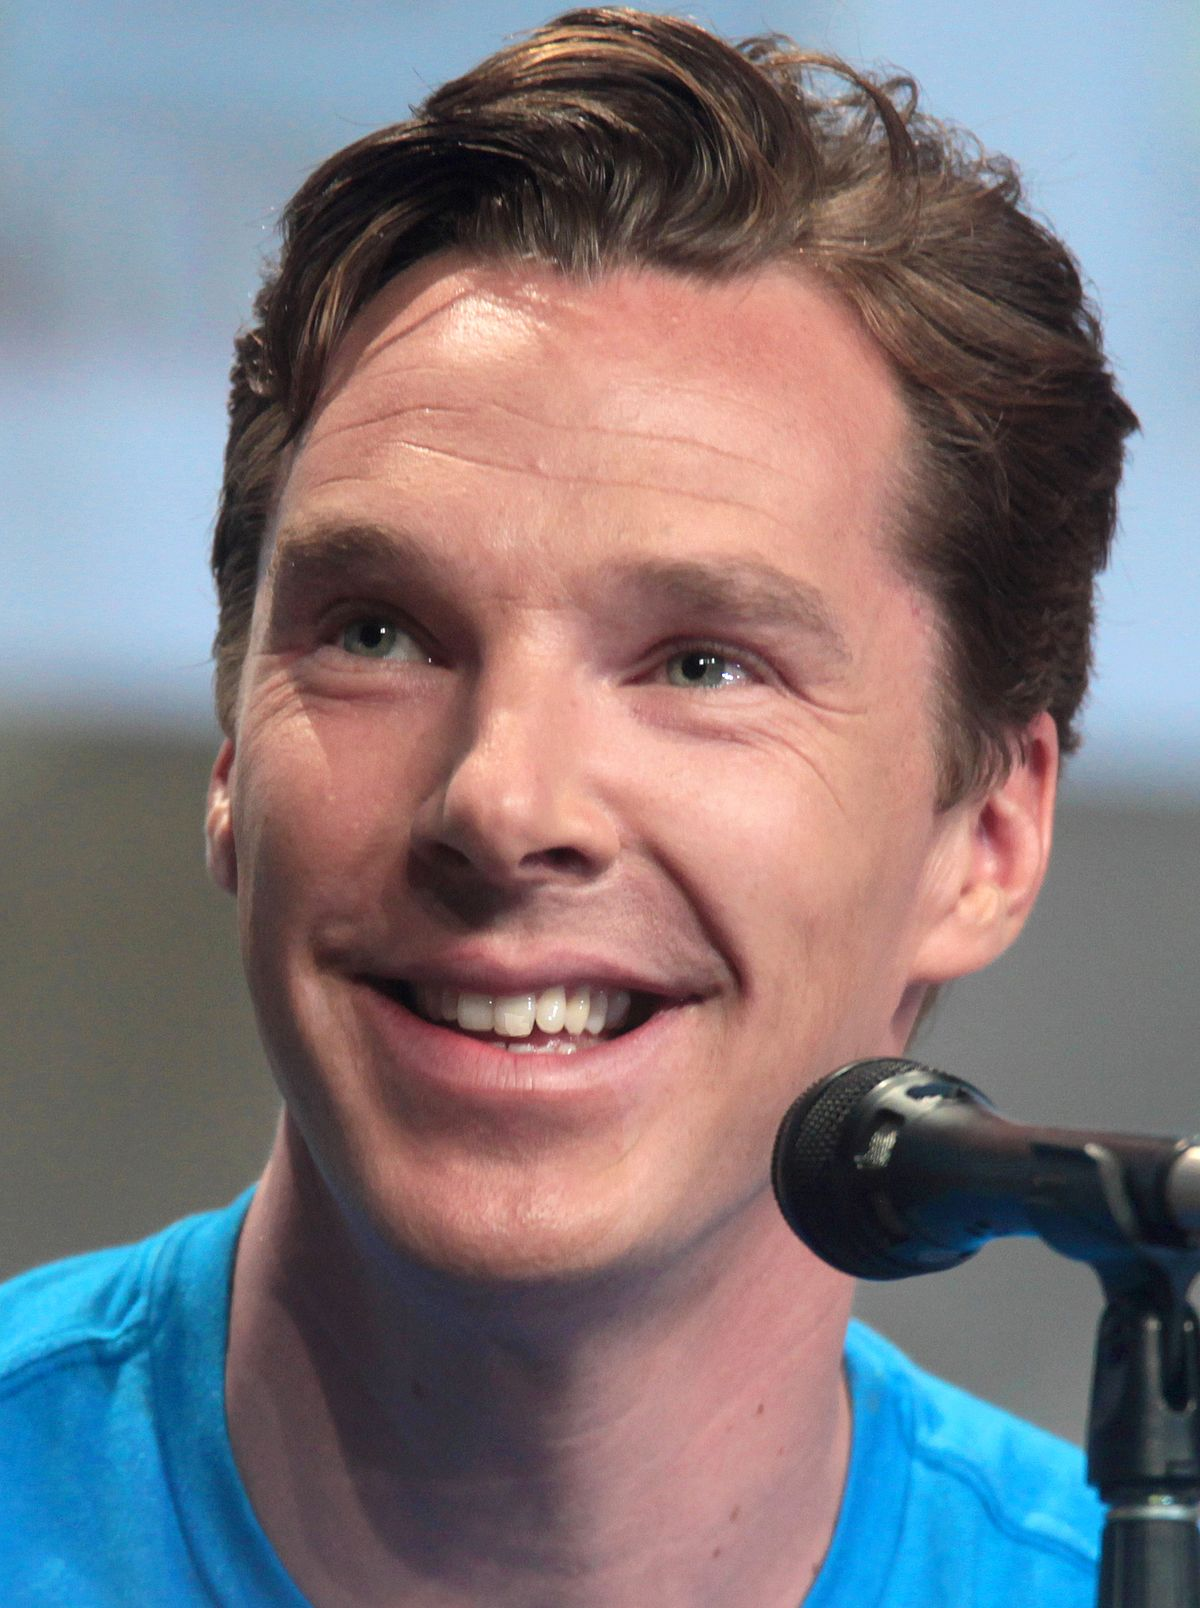 benedict cumberbatch - photo #9